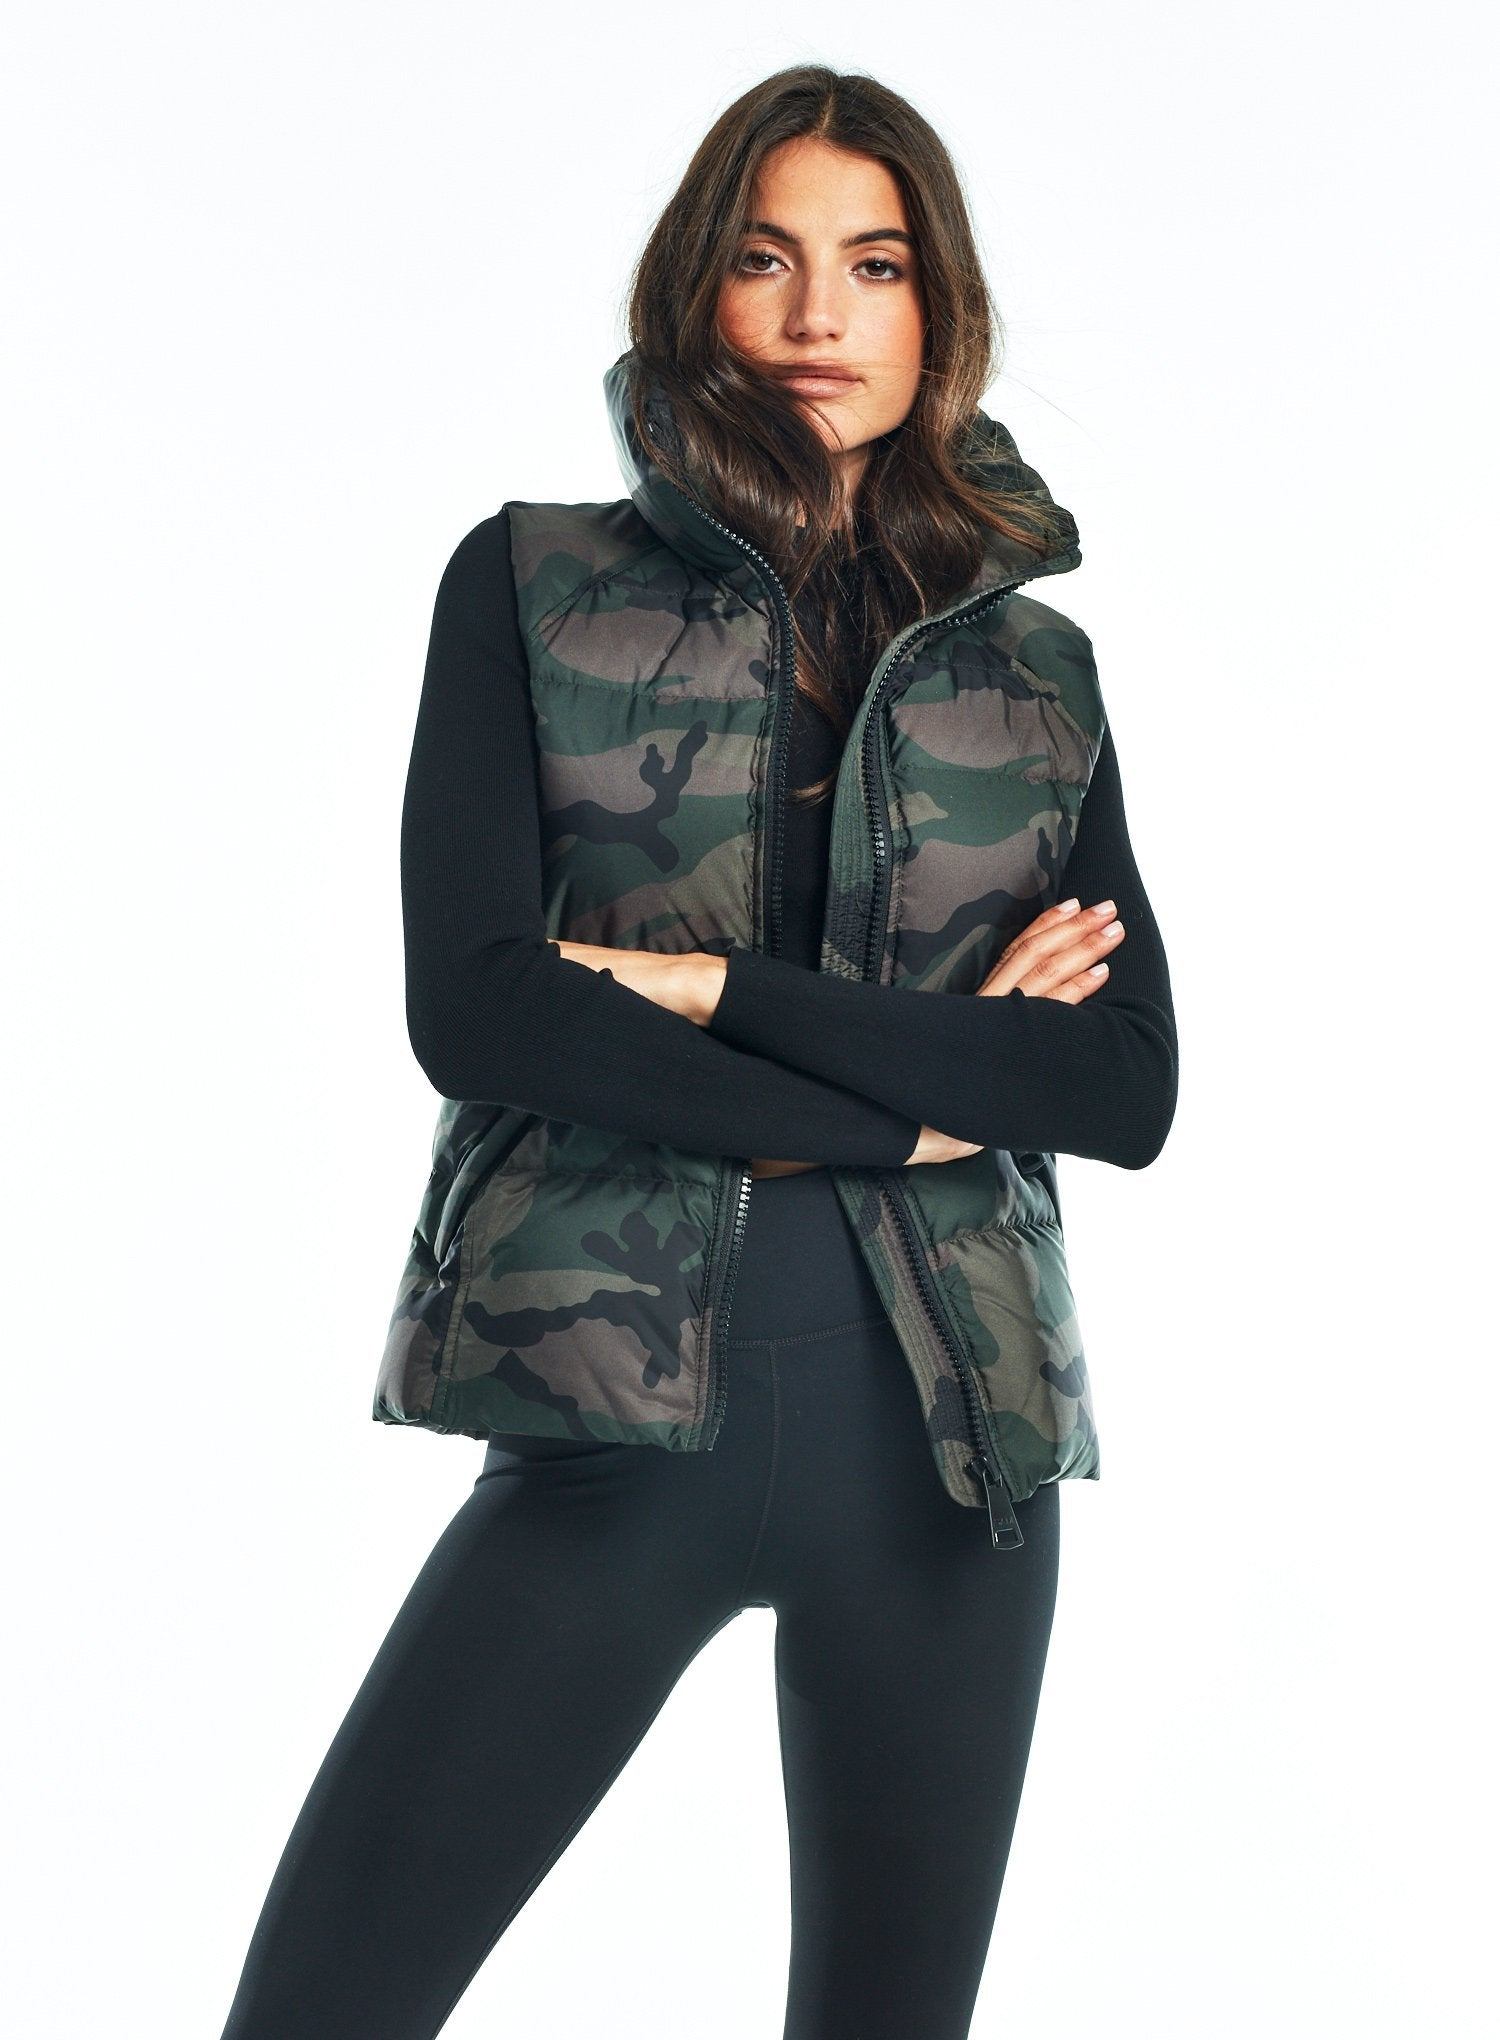 CAMO FREEDOM VEST CAMO FREEDOM VEST - SAM. New York Sam nyc jacket